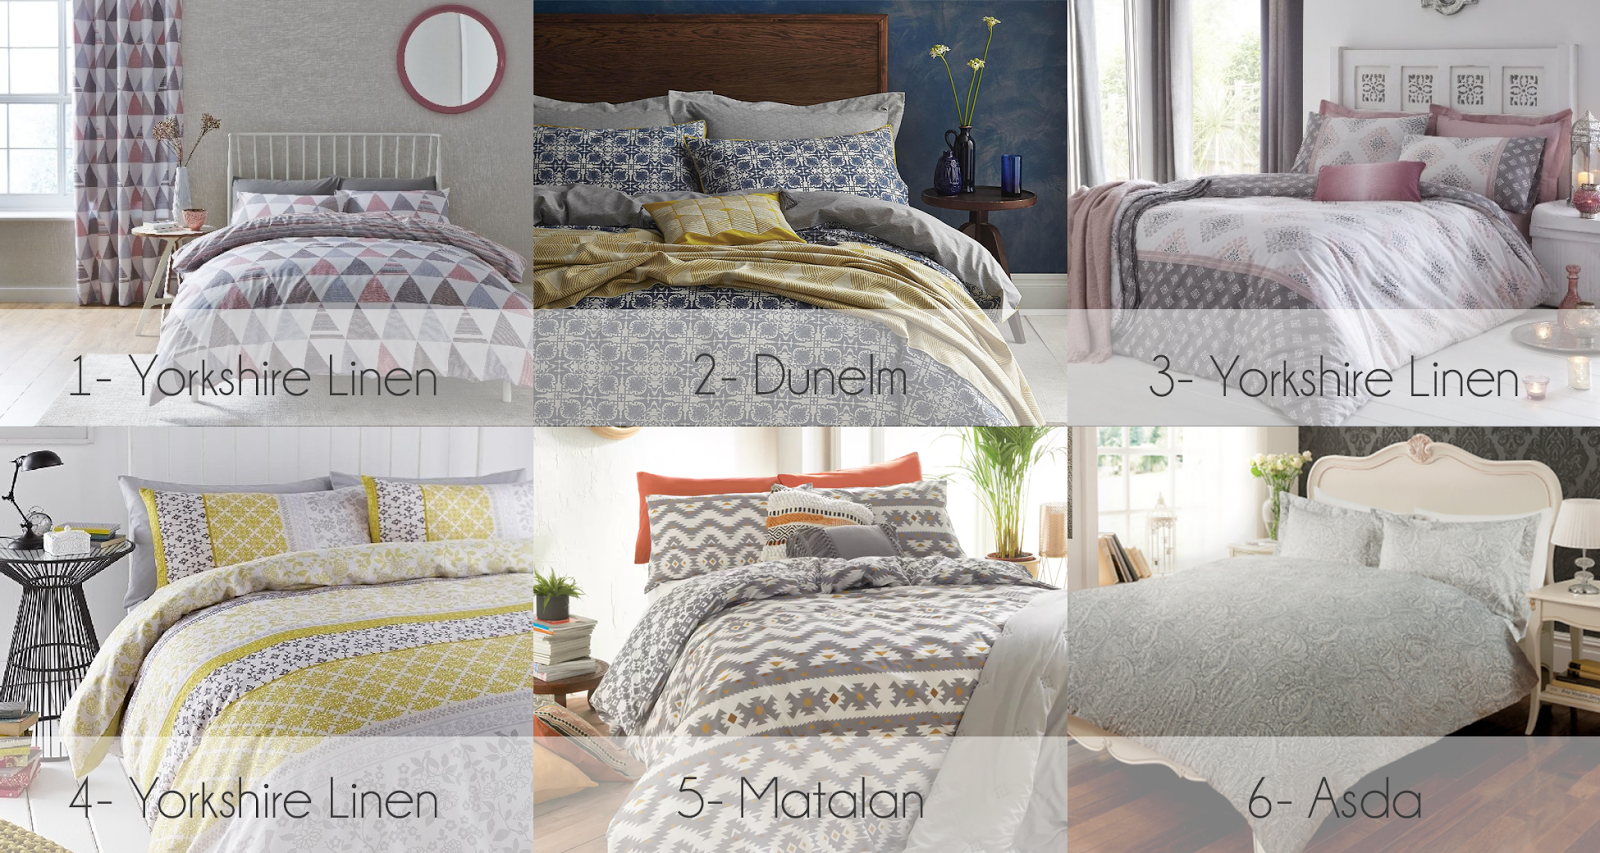 Begin the New Year with New Duvet covers